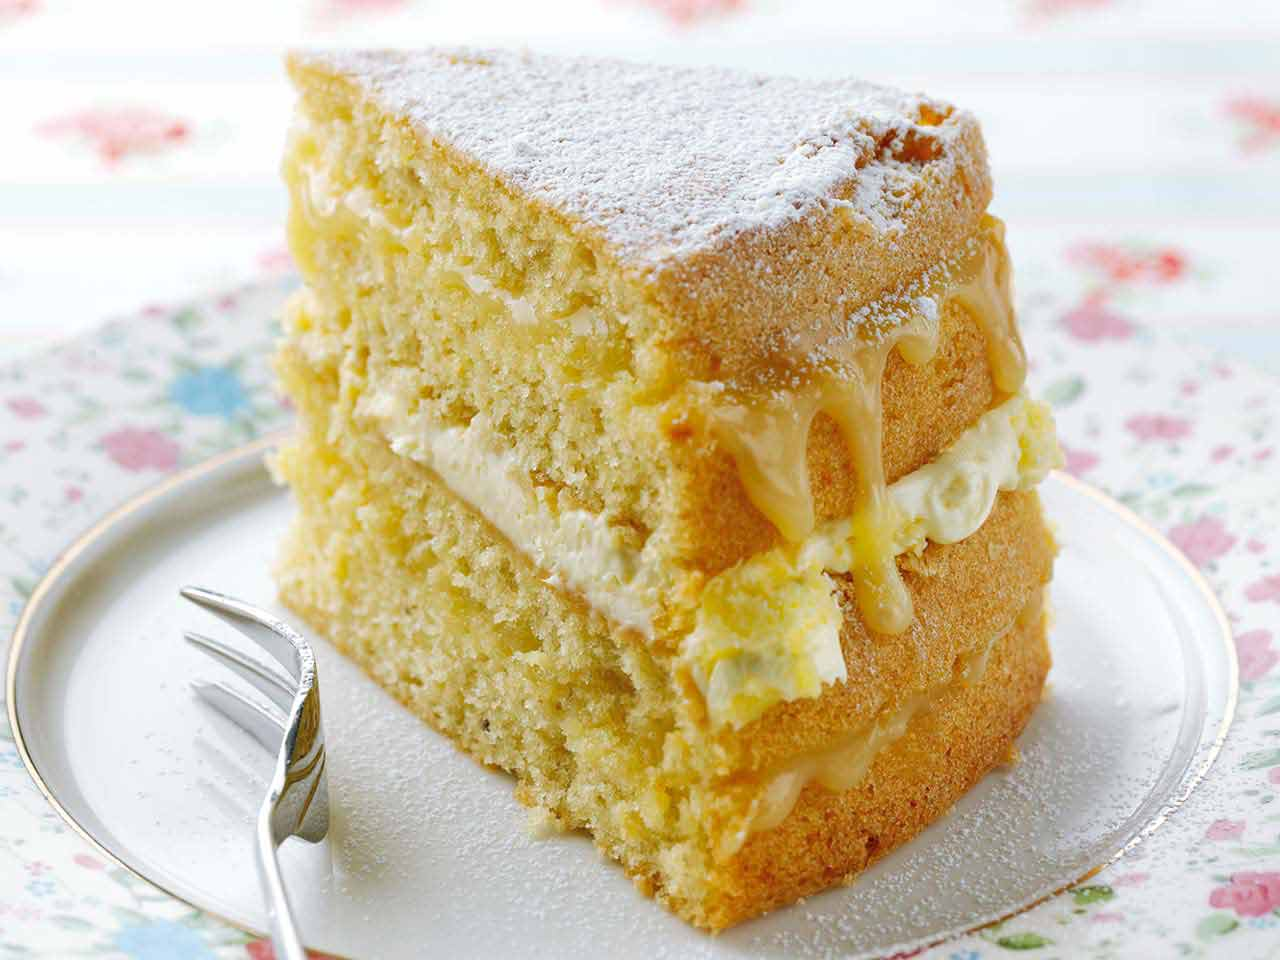 Lemon cake recipe uk - Food next recipes